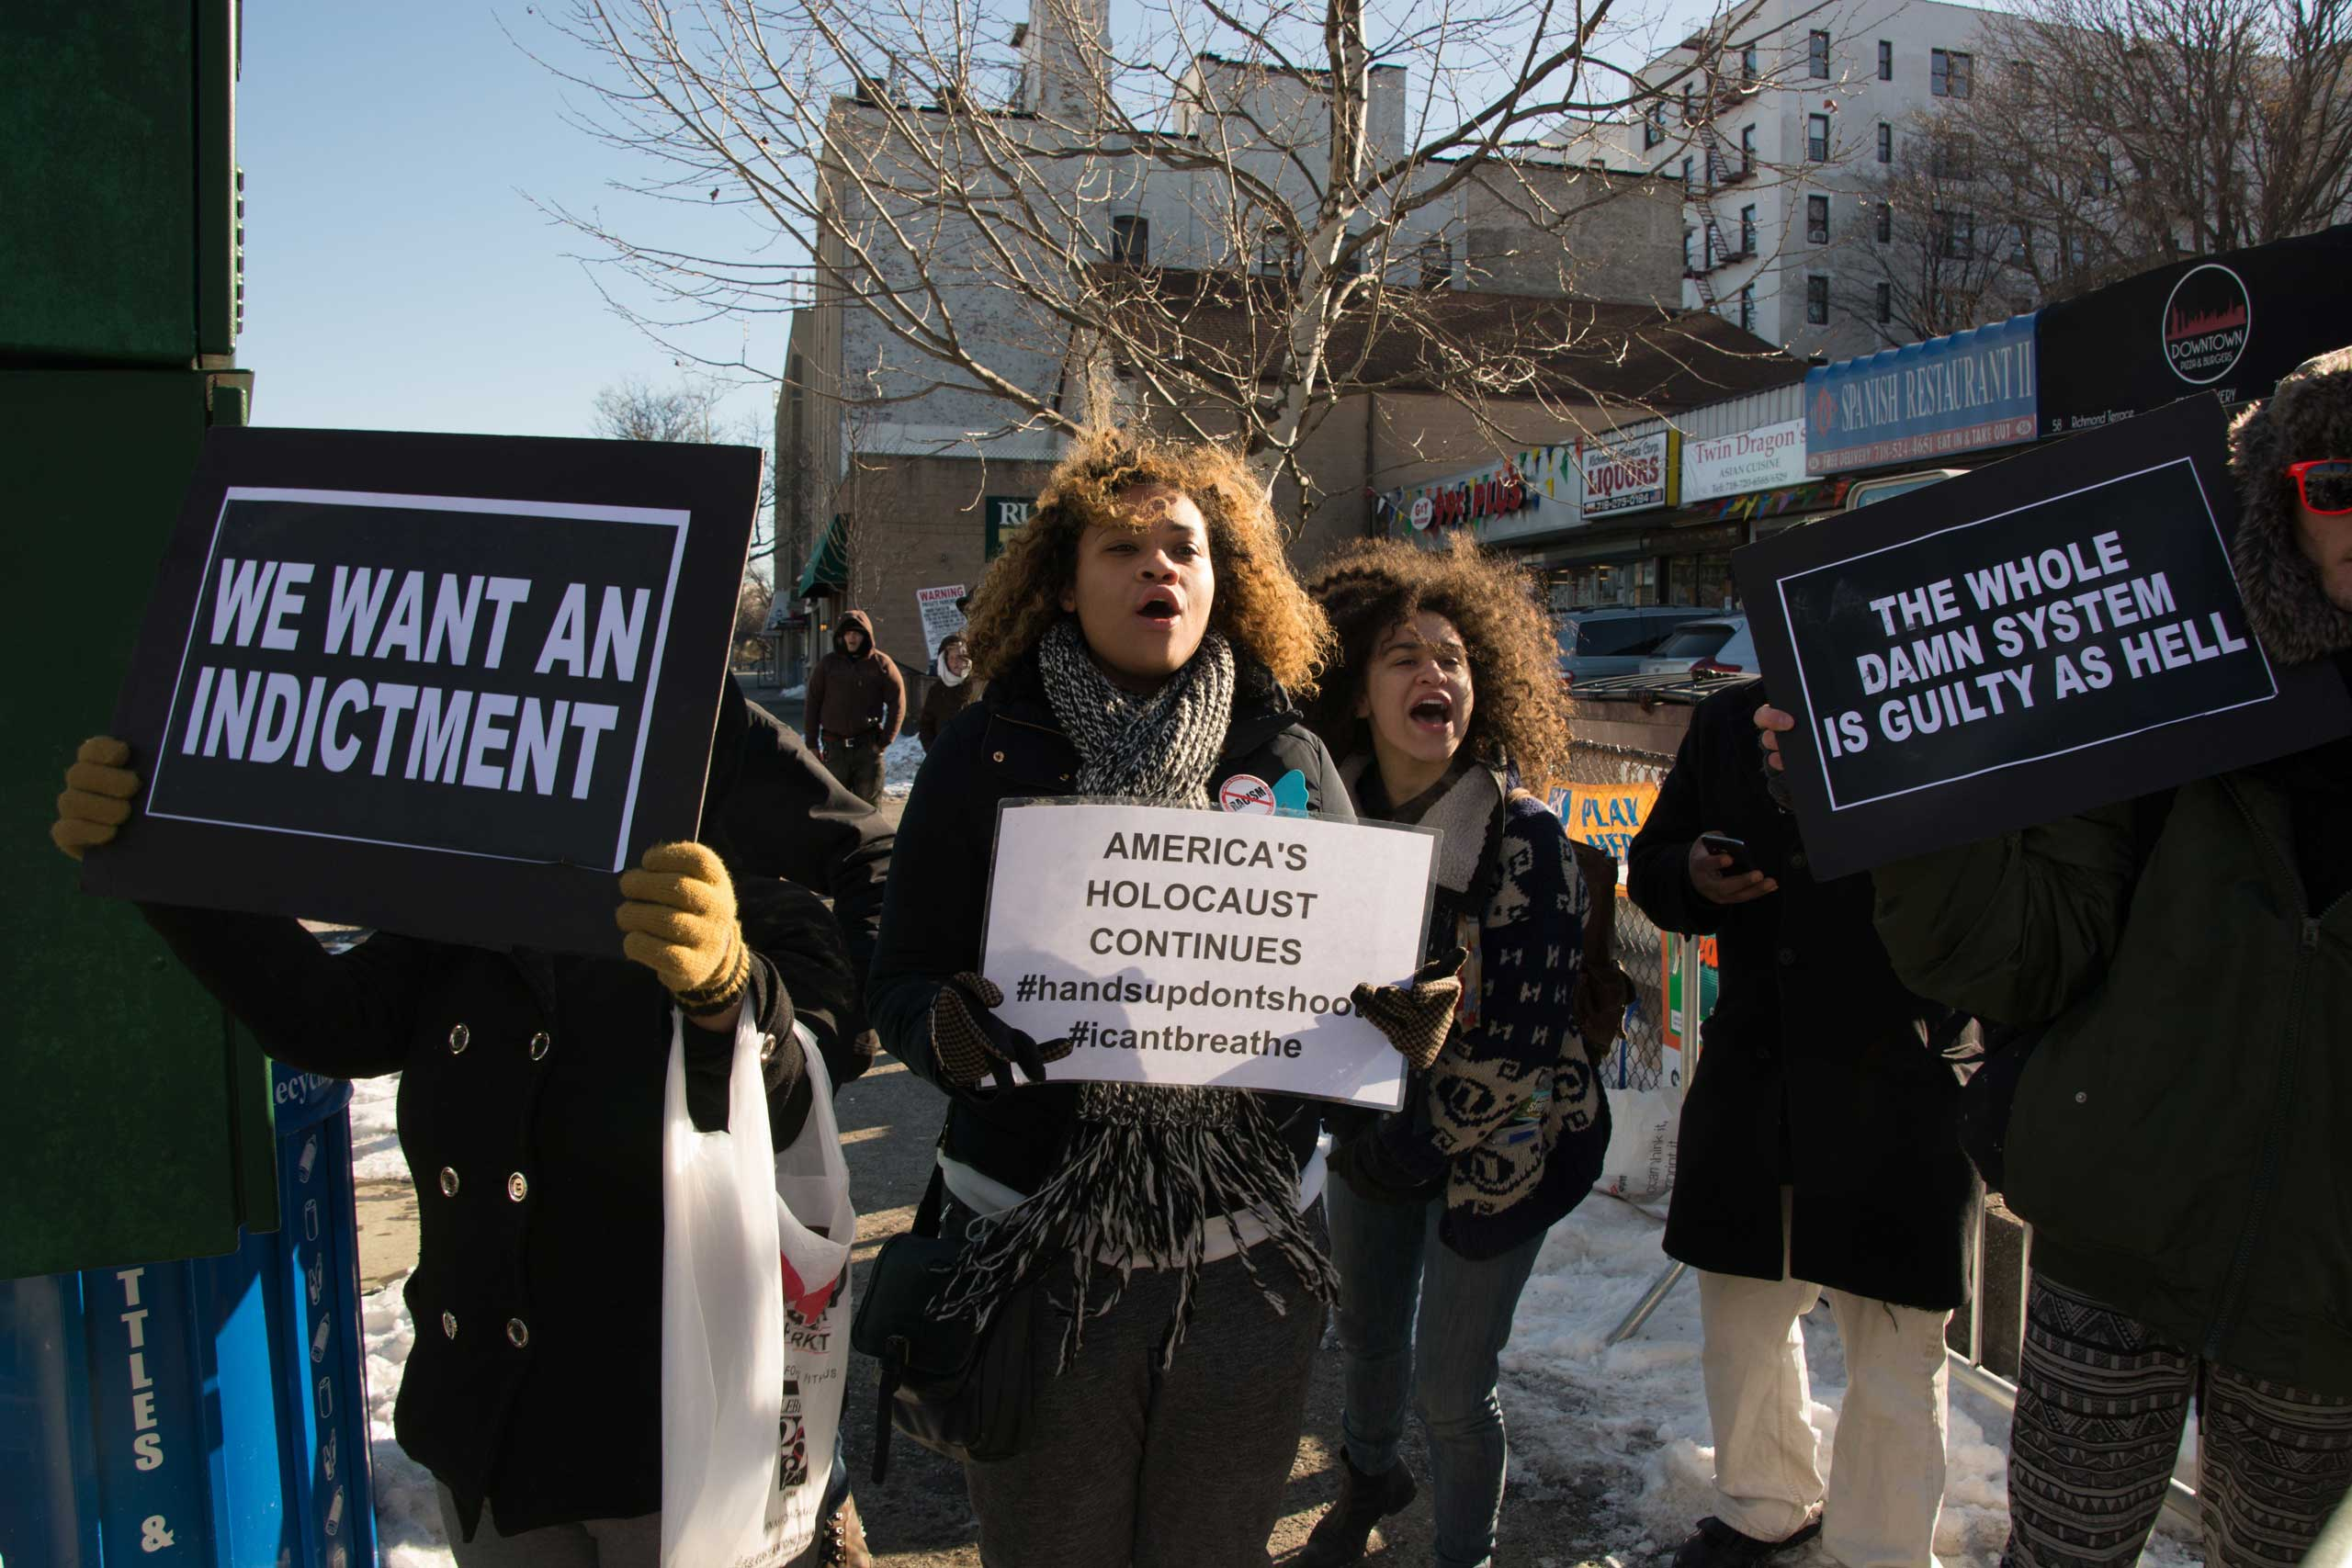 Demonstrators protest over the Eric Garner grand jury decision in Staten Island, N.Y. on Jan. 31, 2015.